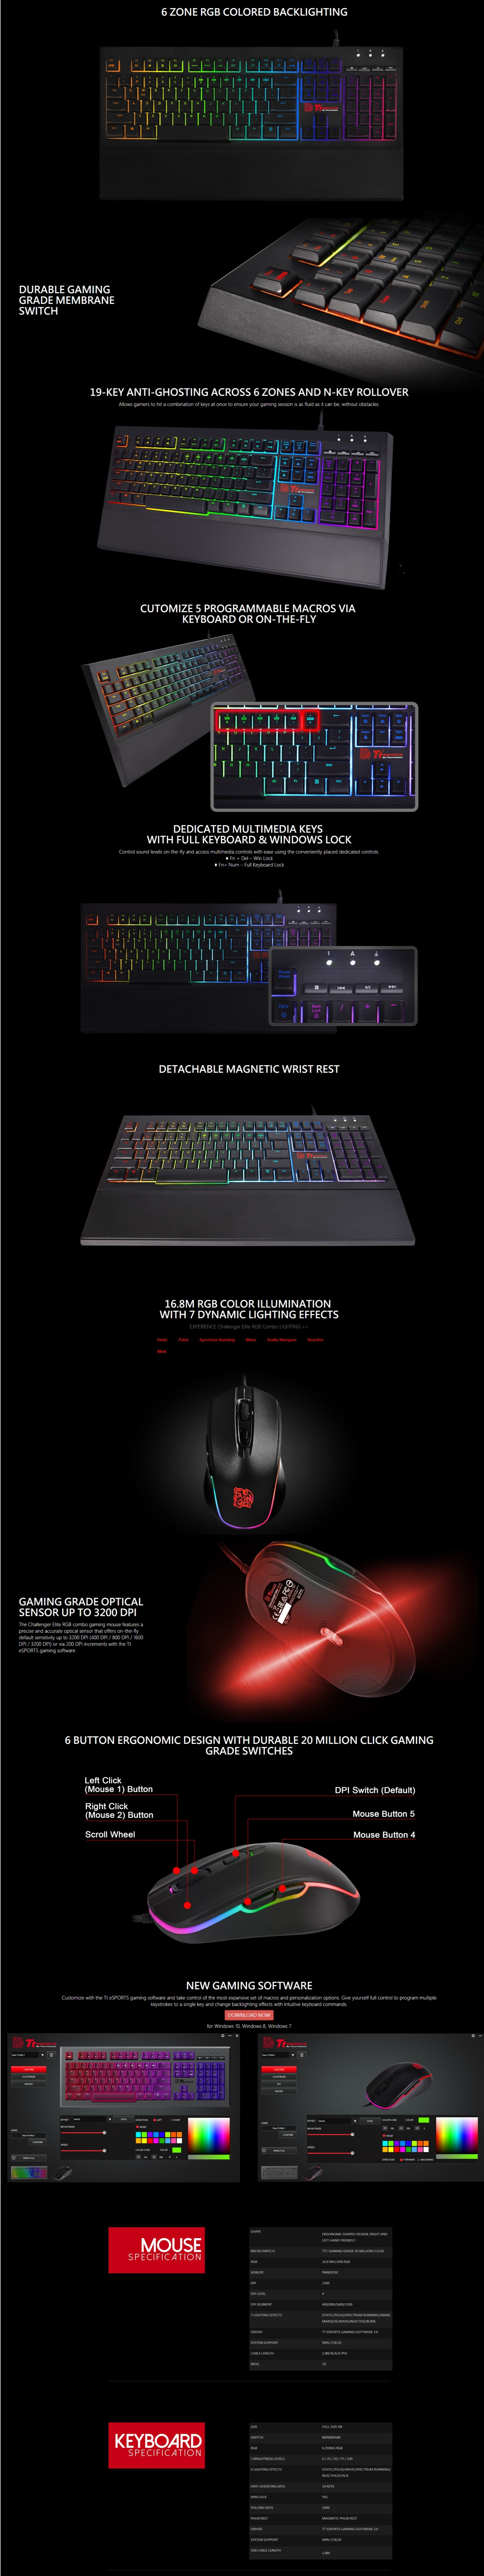 A large marketing image providing additional information about the product Thermaltake Challenger Elite RGB Gaming Keyboard & Mouse Combo - Additional alt info not provided